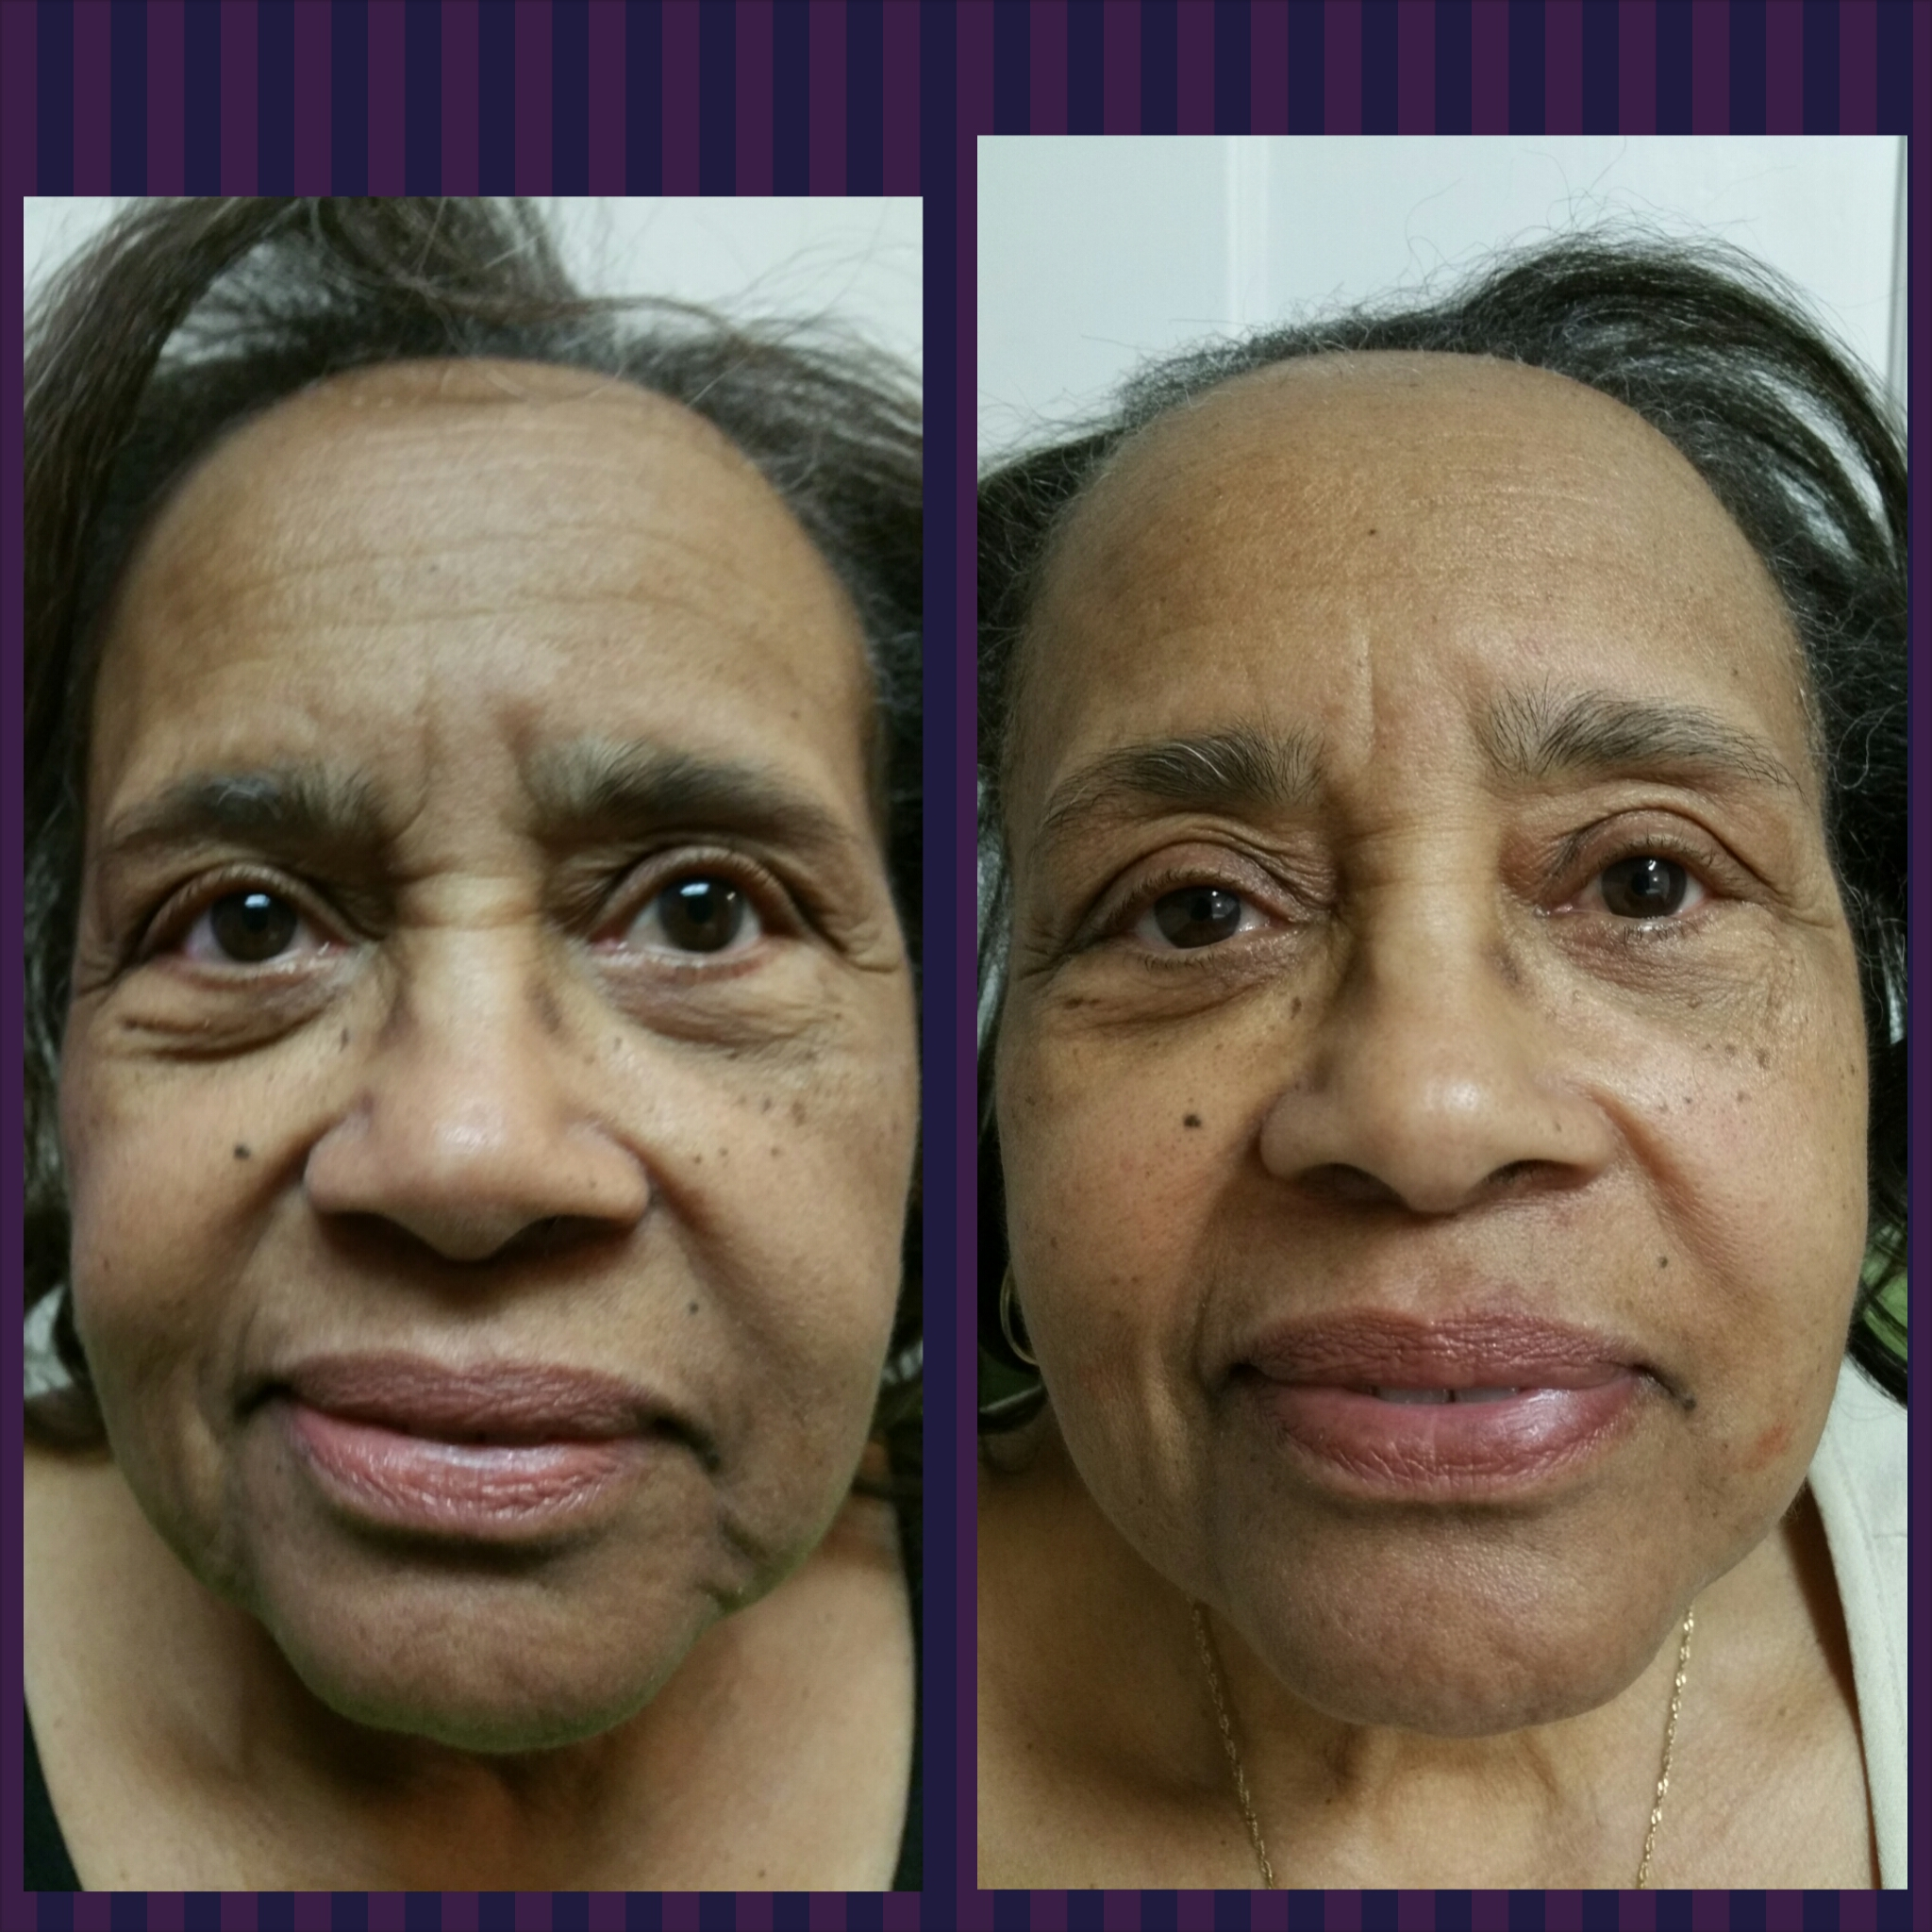 Left is before and Right is after-note the improvement in wrinkles of the forehead, bridge of nose, under eyes, nose to lip groove, and jawline. Results after complete series.